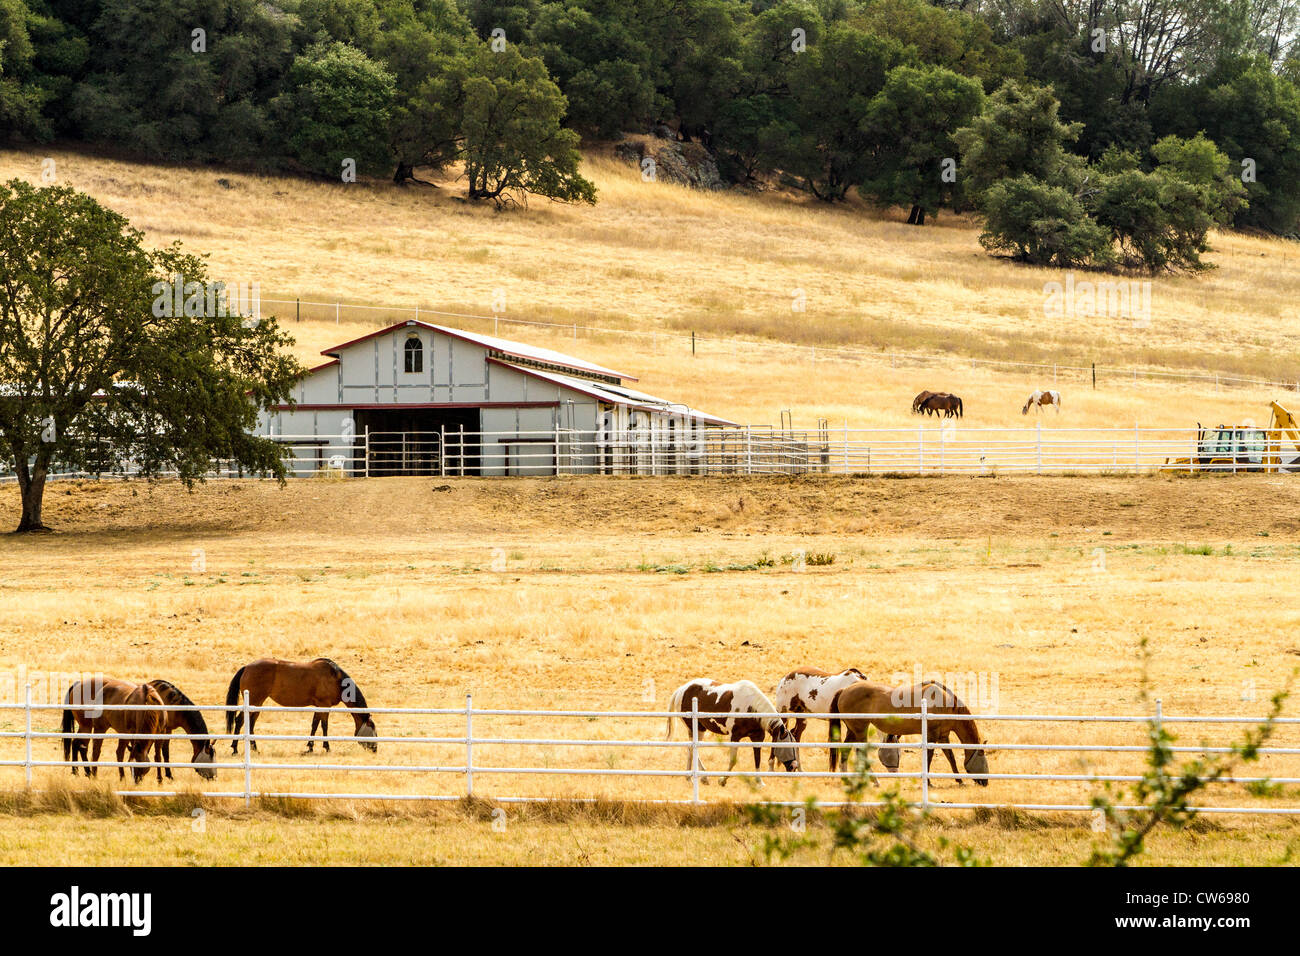 A California Horse Ranch in the foothills of the Sierra Nevada Mountains Highway 49 California's Gold Country - Stock Image